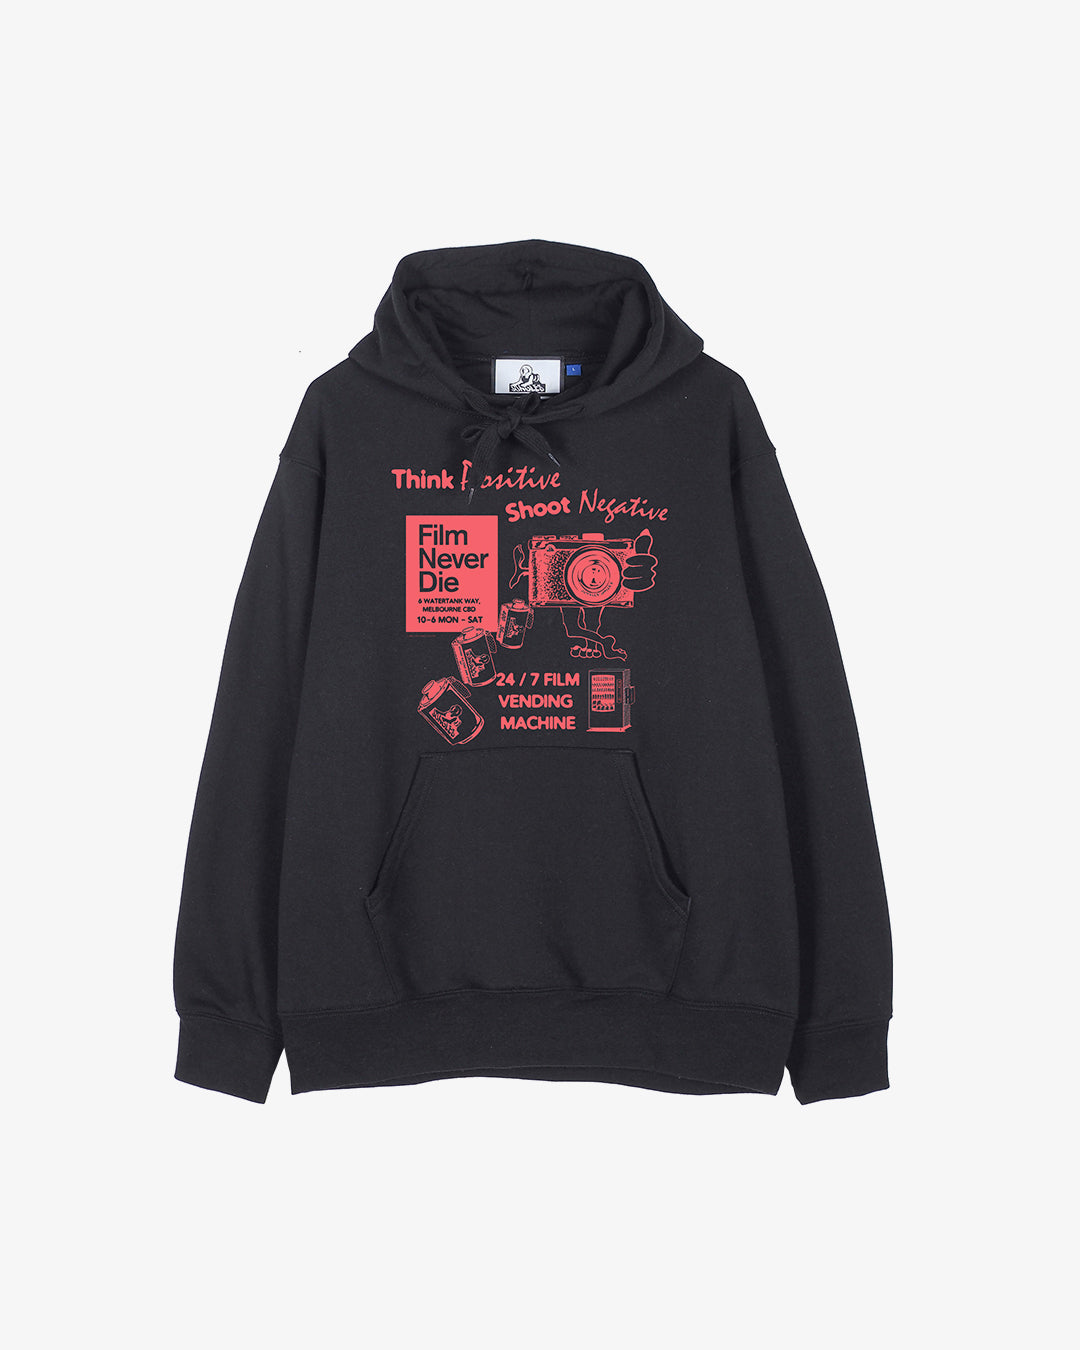 Think Positive, Shoot Negative (Black Hoodie)